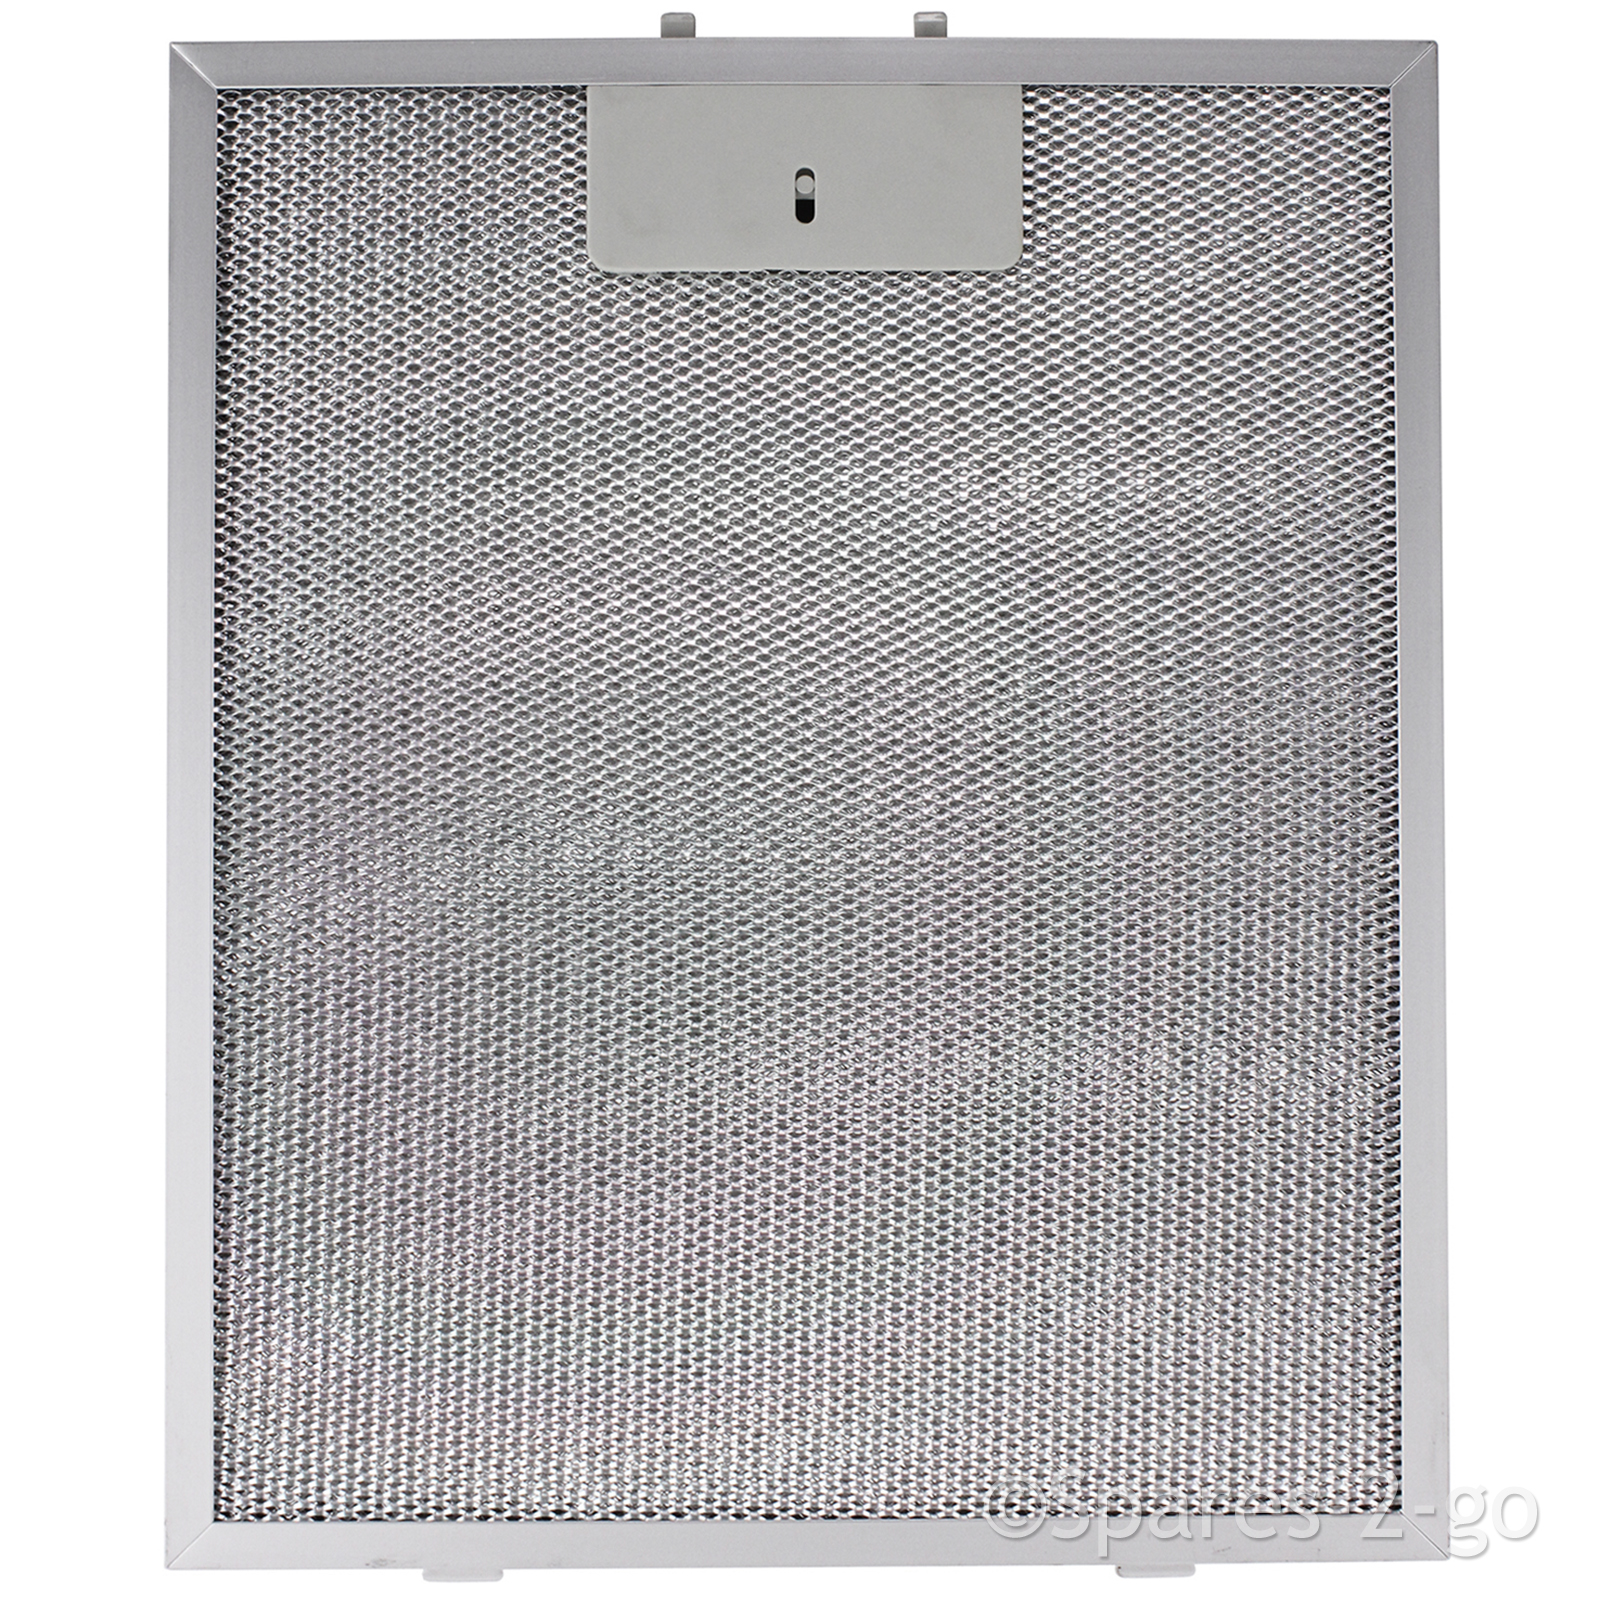 Metal Mesh Filter For Bosch Neff Siemens Cooker Hood Vent